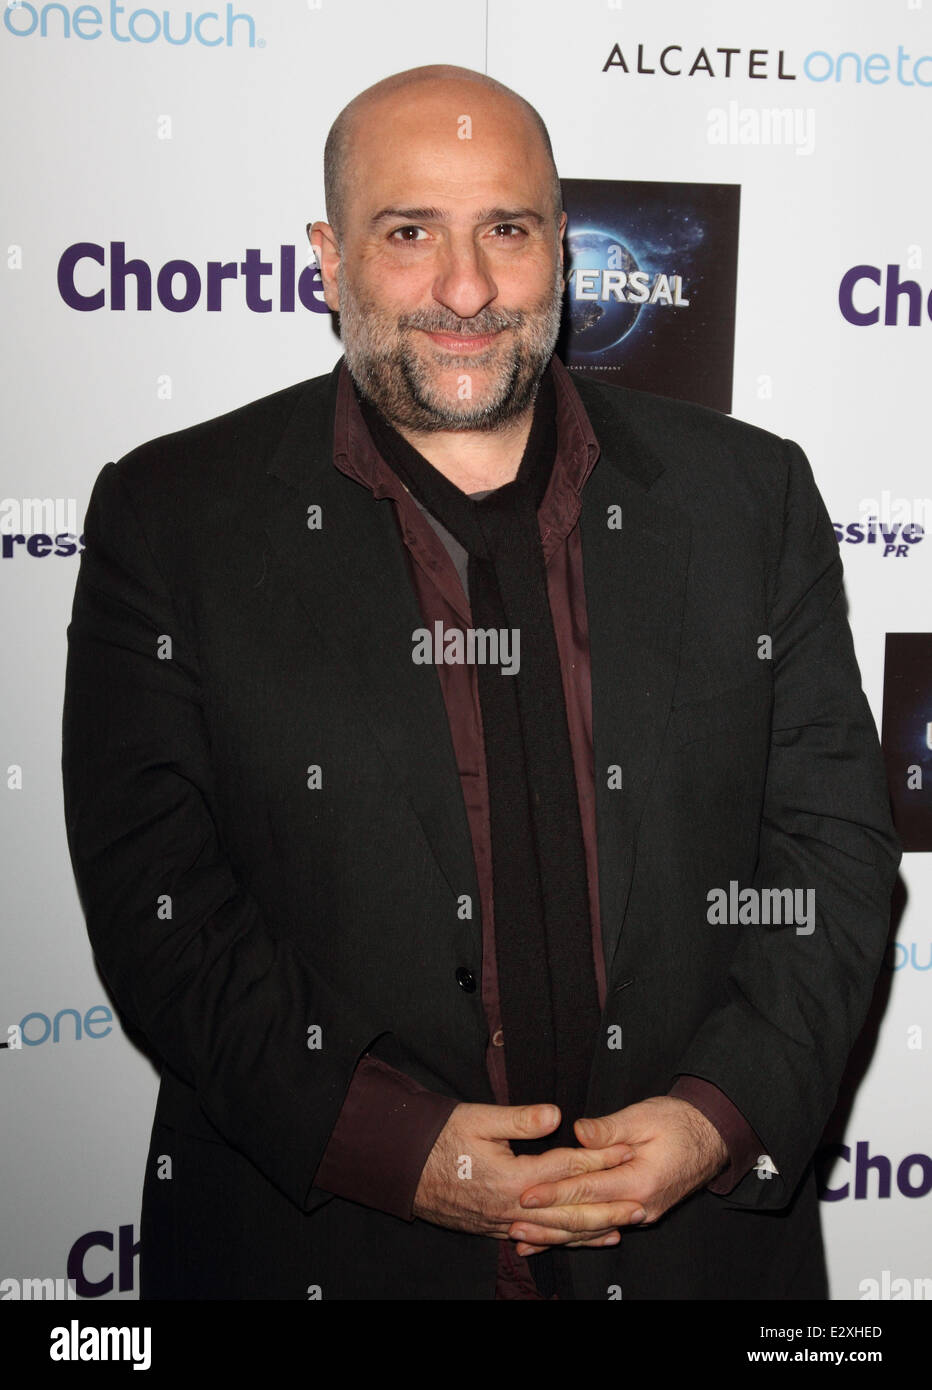 Chortle Comedy Awards 2013 at Cafe de Paris  Featuring: Omid Djalili Where: London, United Kingdom When: 25 Mar - Stock Image